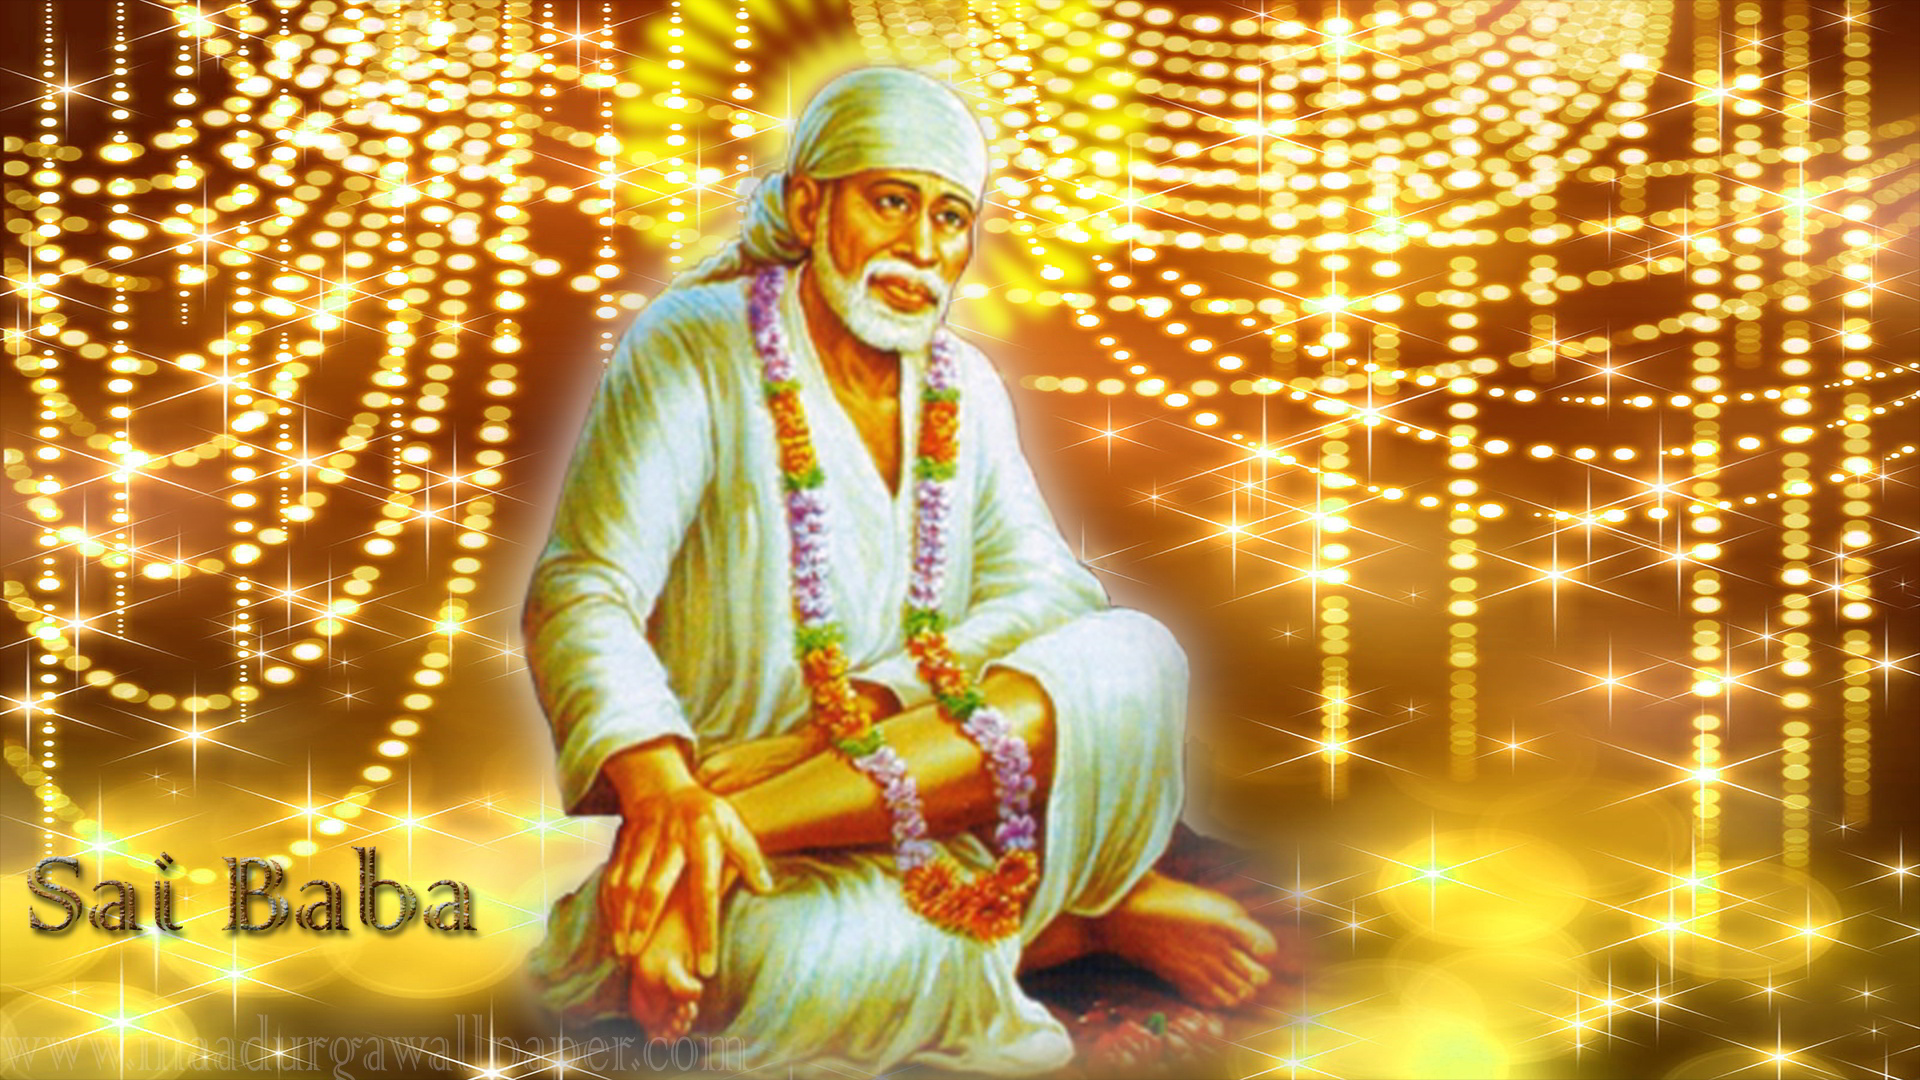 Sai Baba Hd 3d Wallpaper Download Download Images Of Sai Baba Wallpaper Gallery